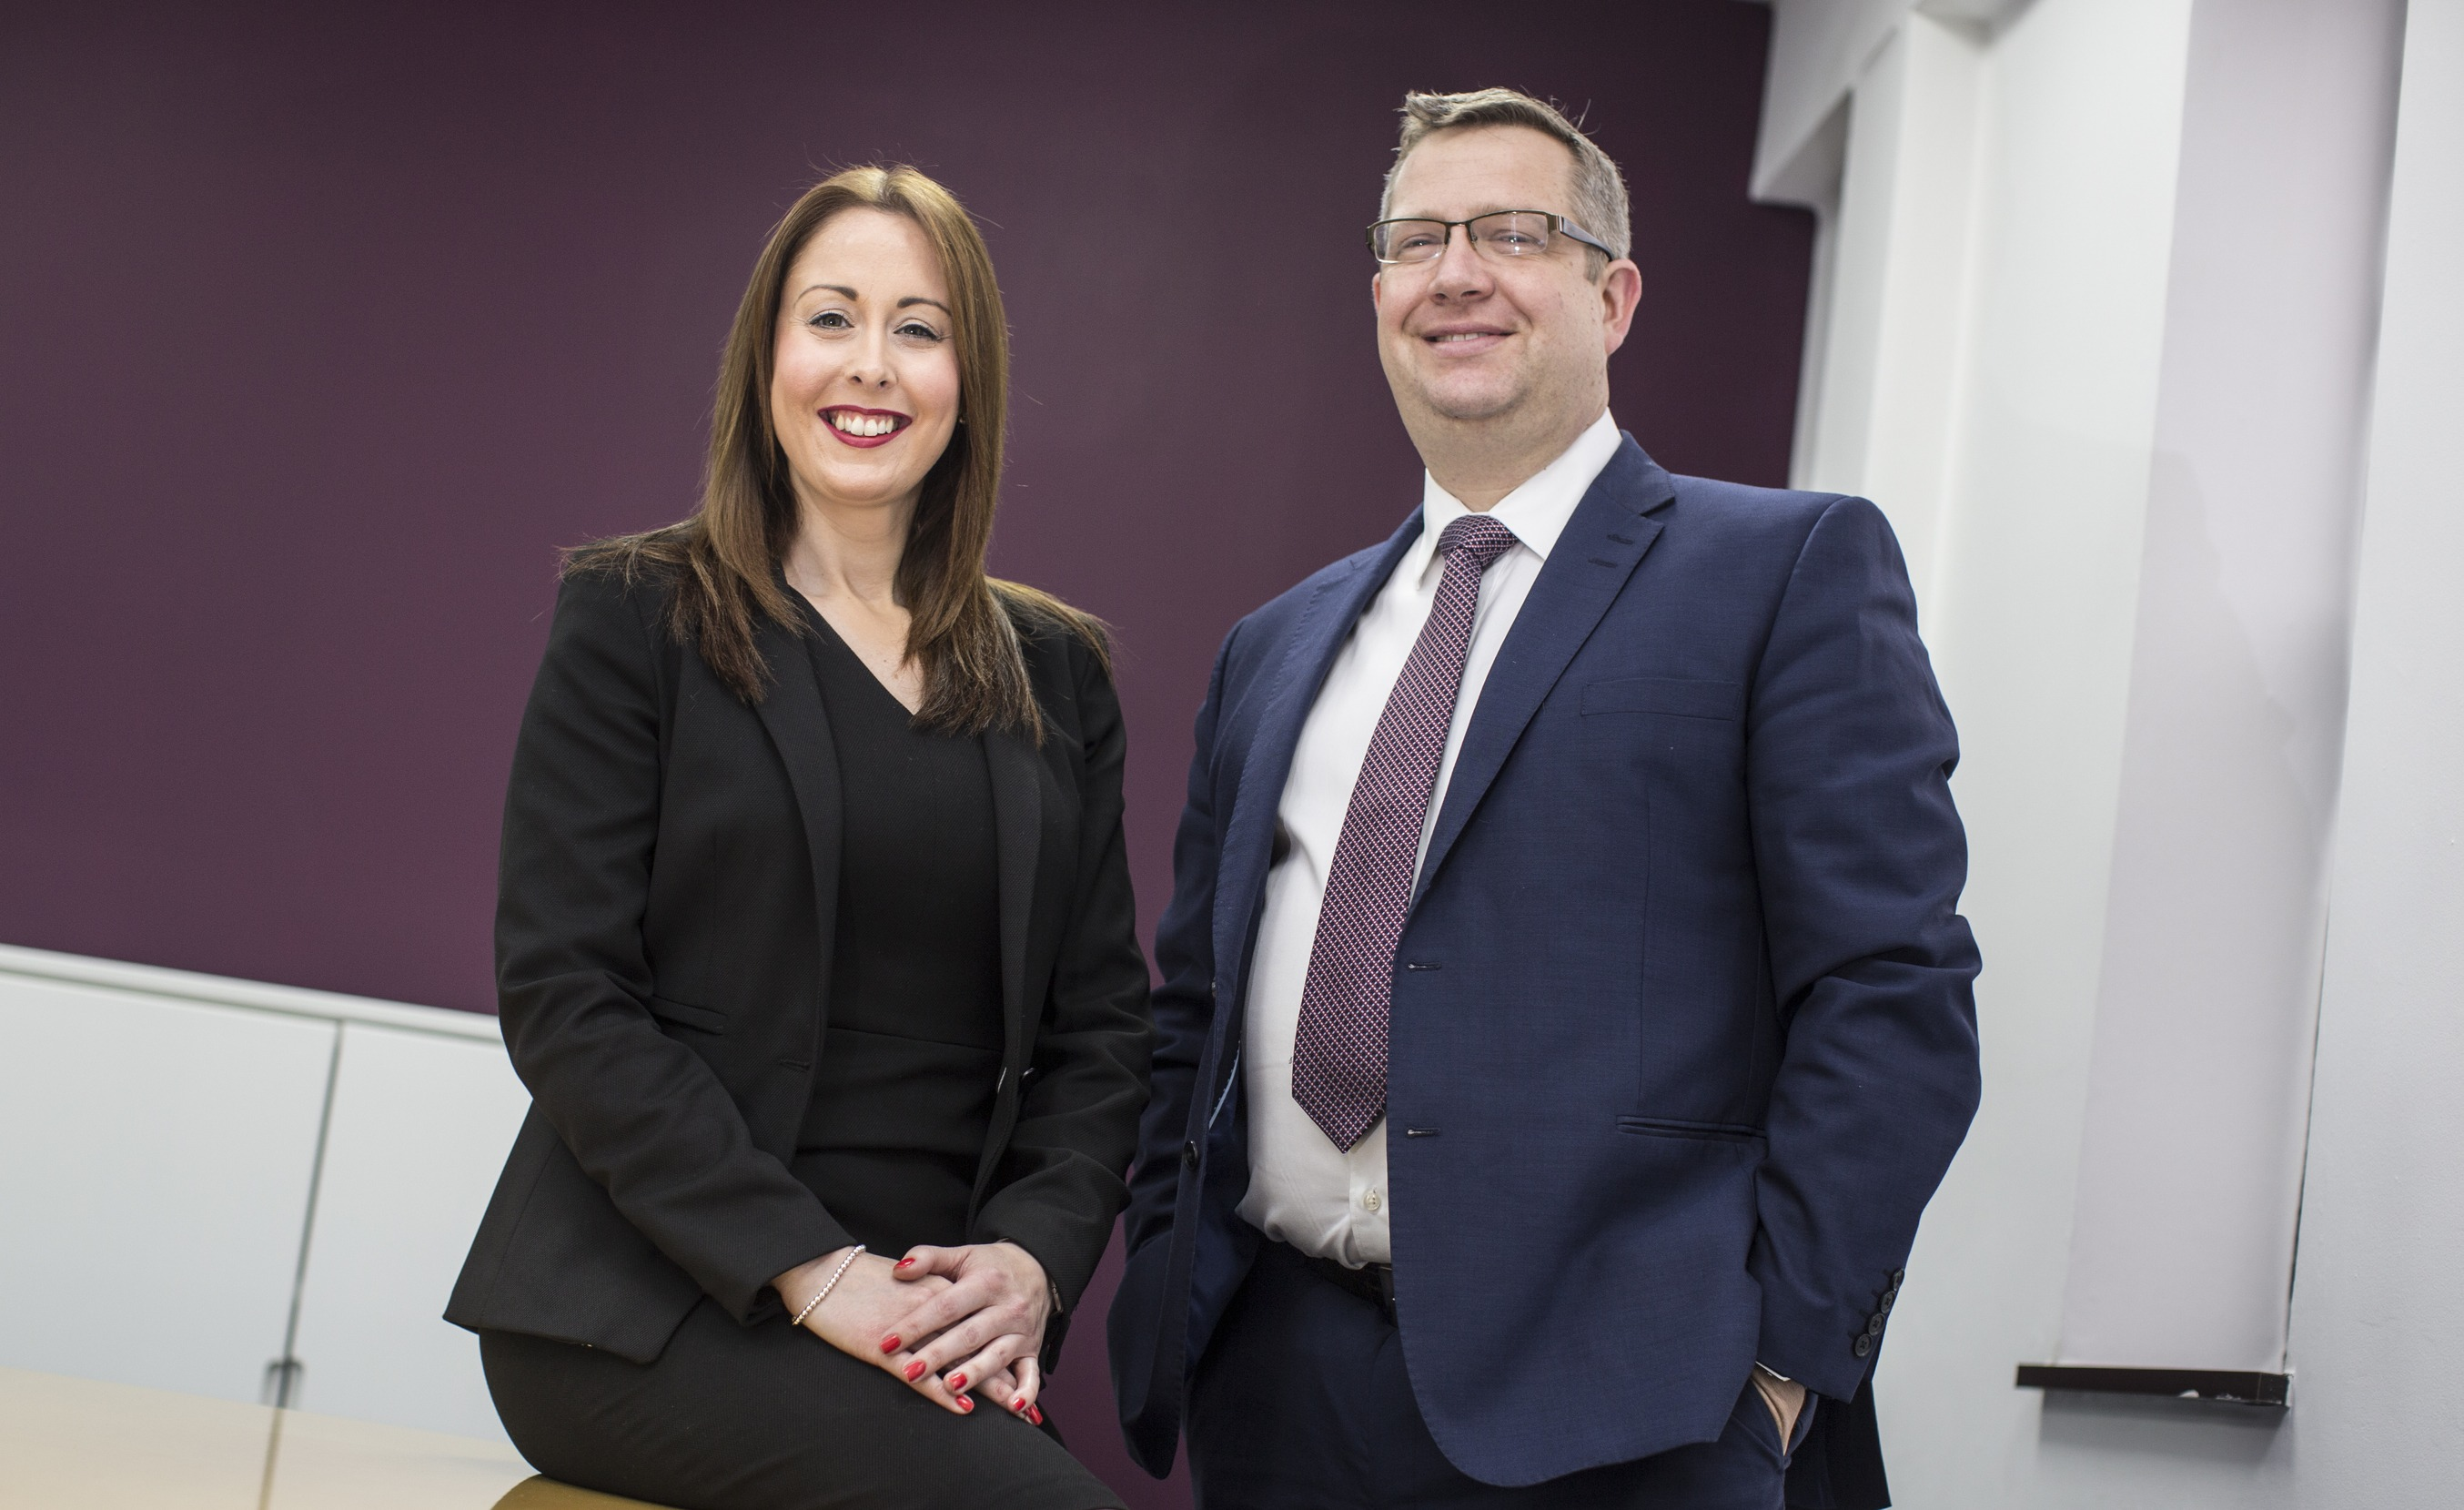 Commercial law firm appoints marketing manager in bid to increase growth